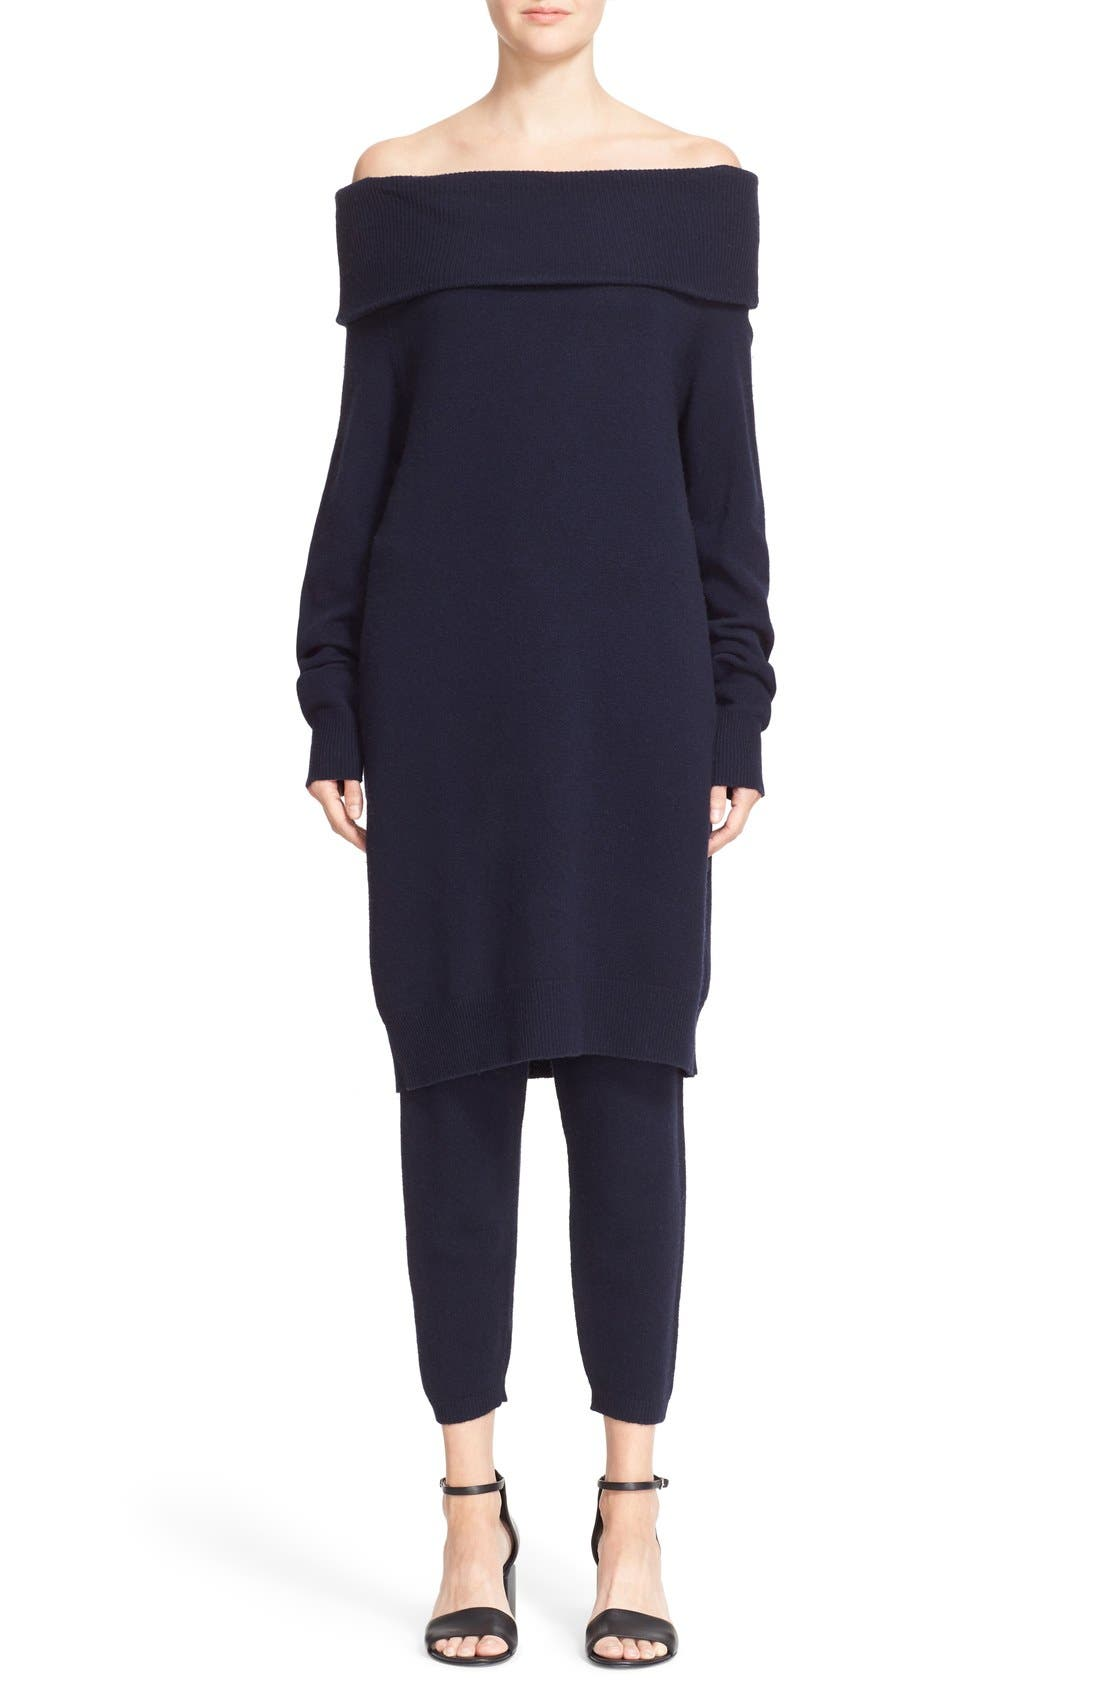 Main Image - T by Alexander Wang Wool & Cashmere Off the Shoulder Sweater